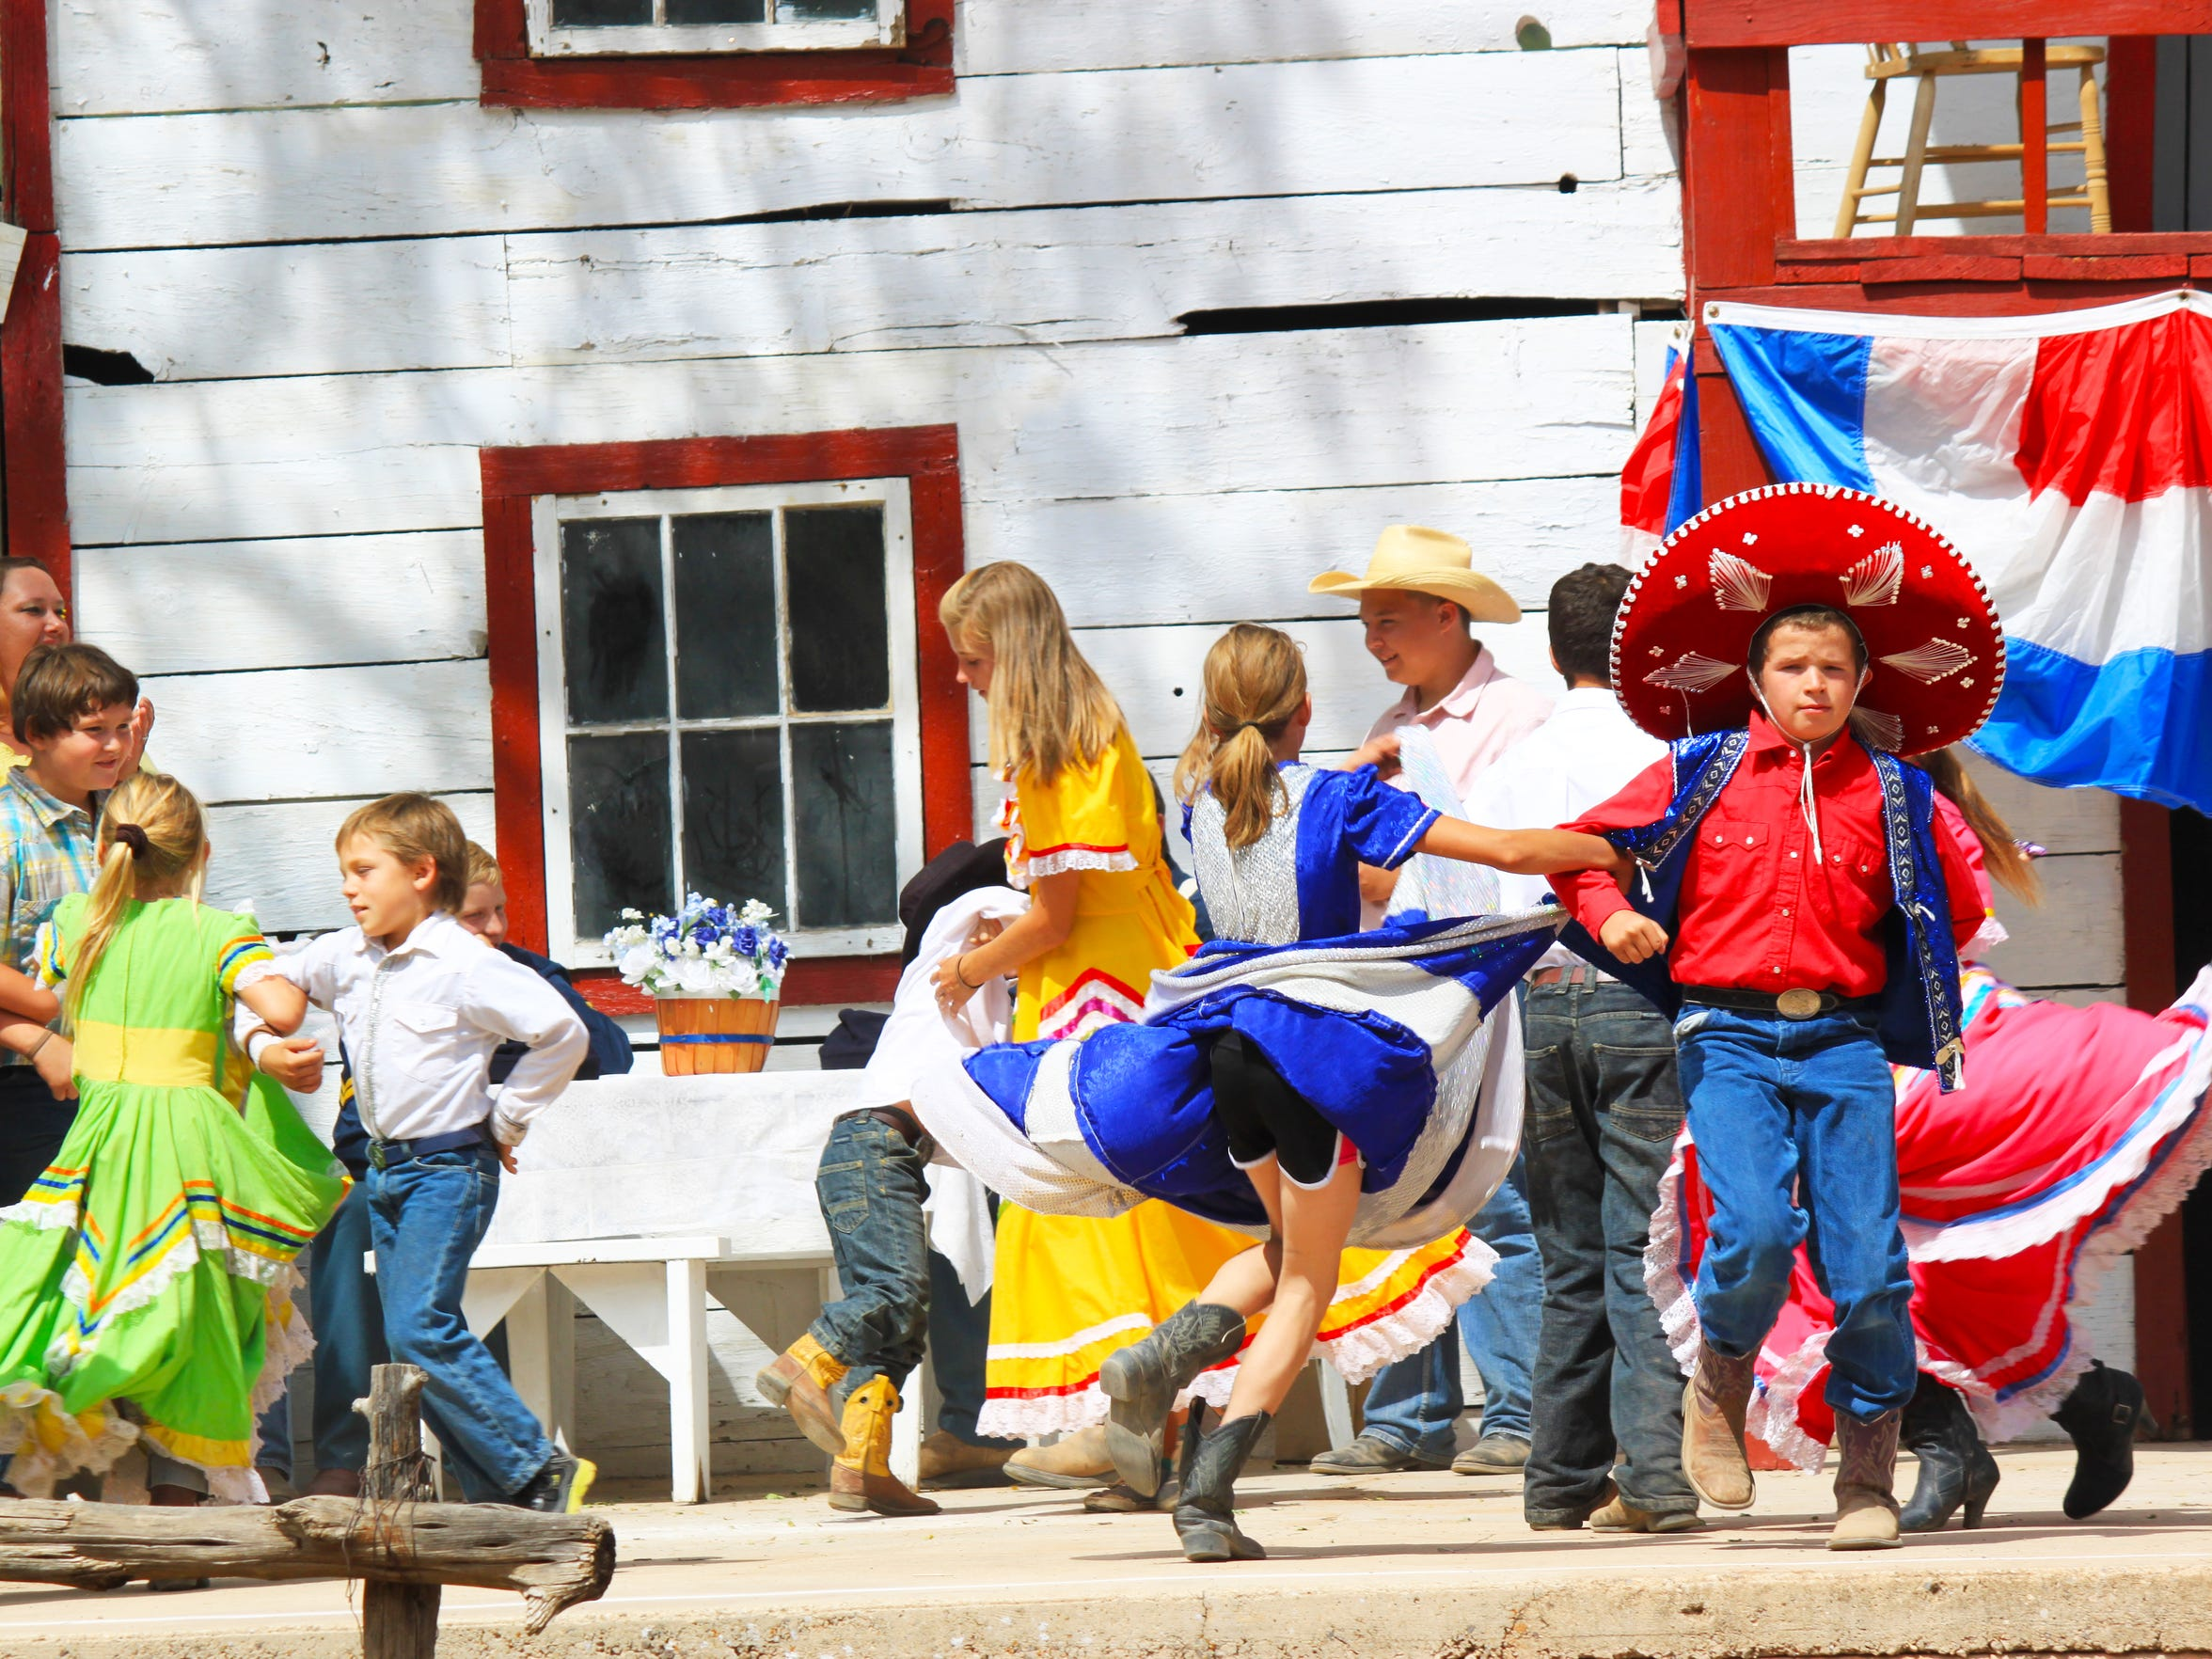 Lincoln Historic Site includes 23 structures and support buildings, 17 which are on the National Historic Registers. These buildings will be the sites welcoming thousands this weekend filled with blacksmithing, gun fights, dancing and more.